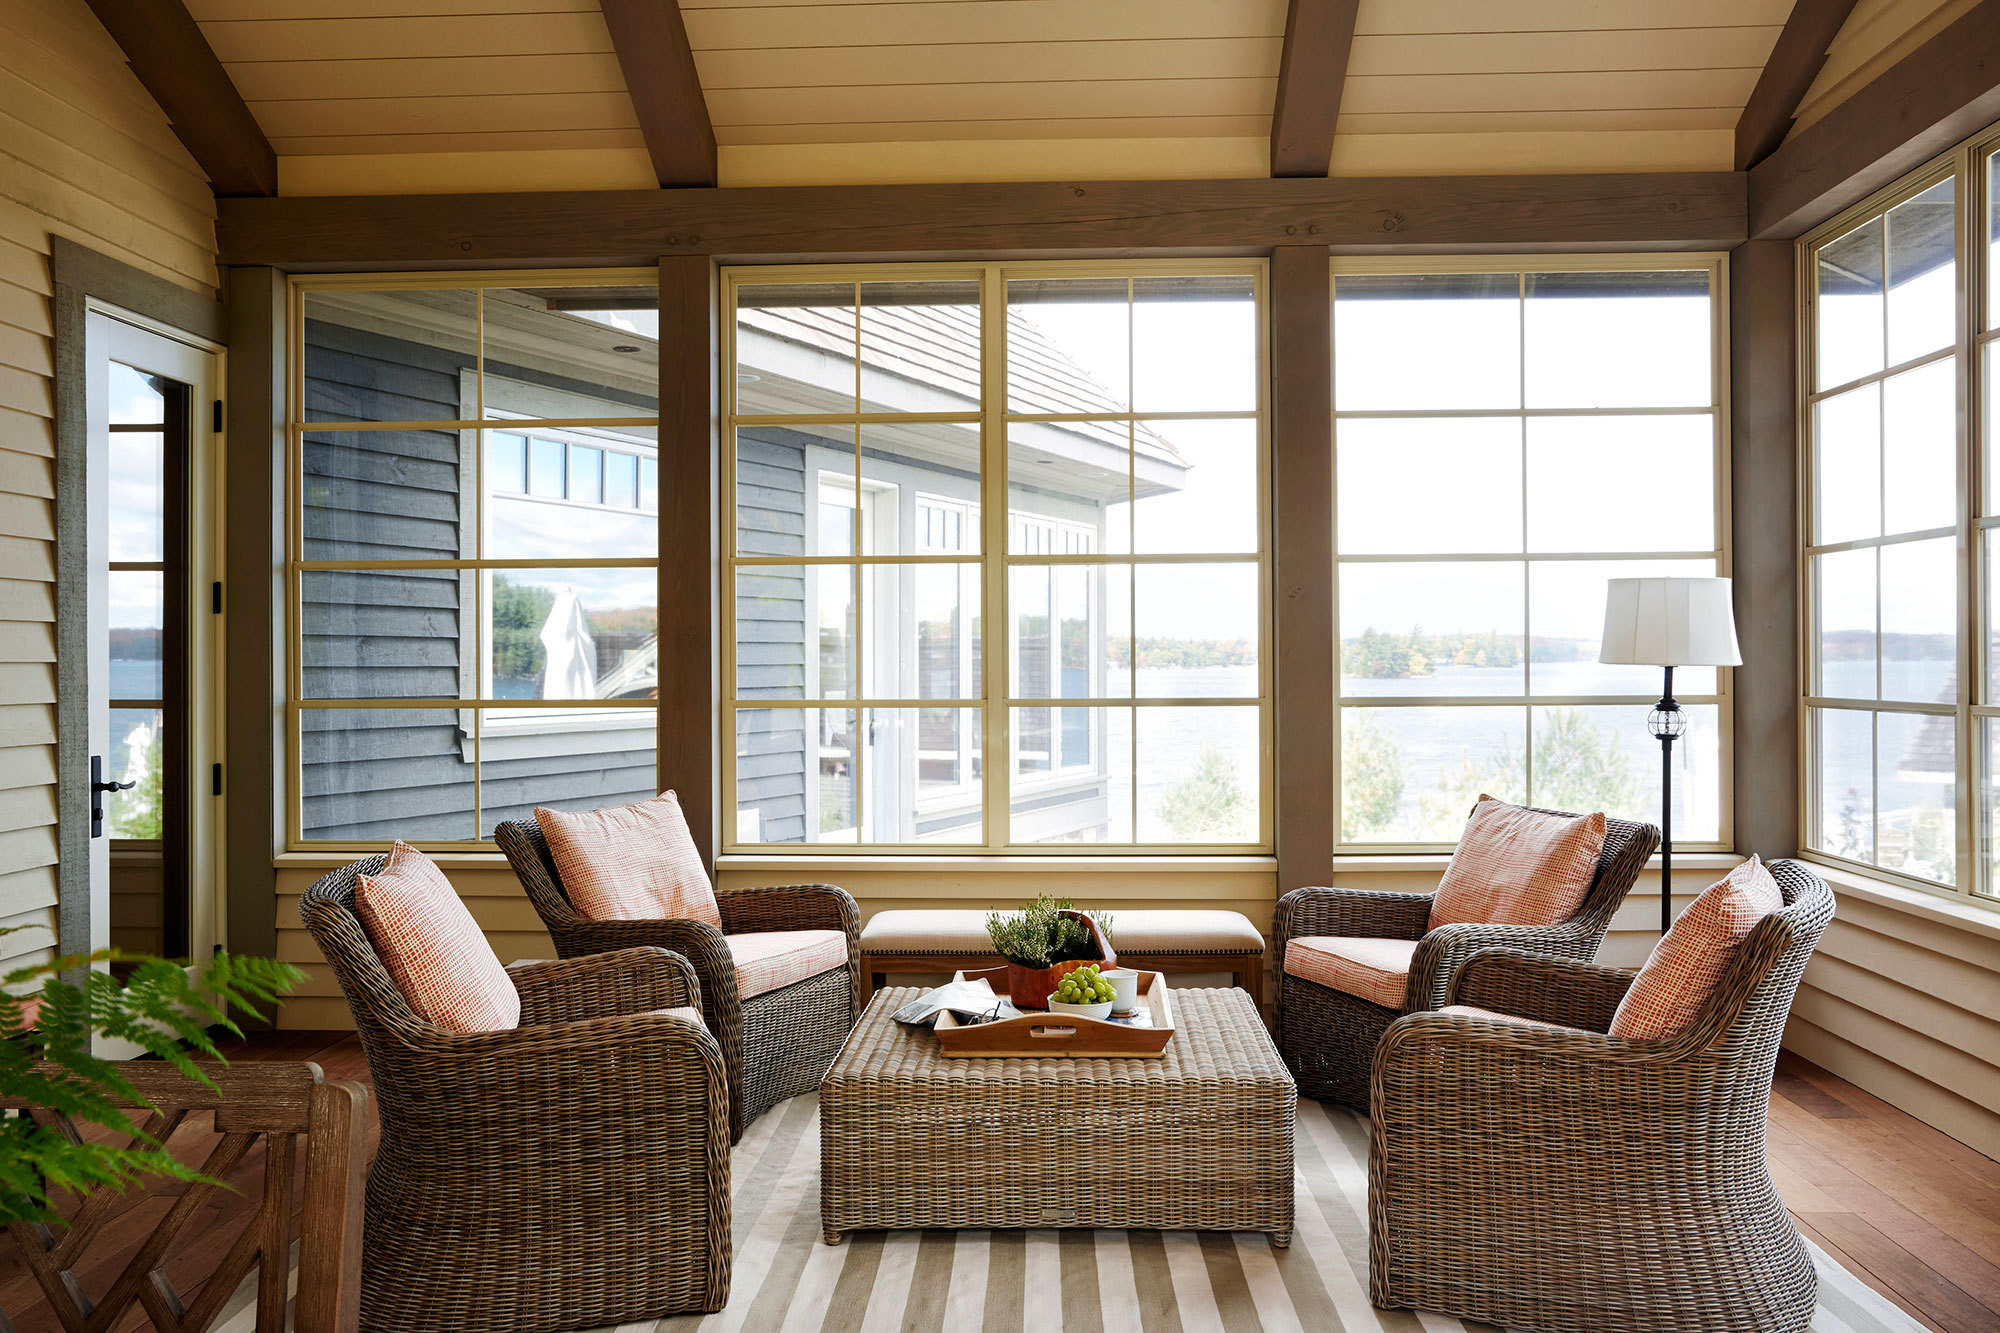 In The Three Season Muskoka Room, Ipe Decking And Furniture In Handwoven  Wicker Make